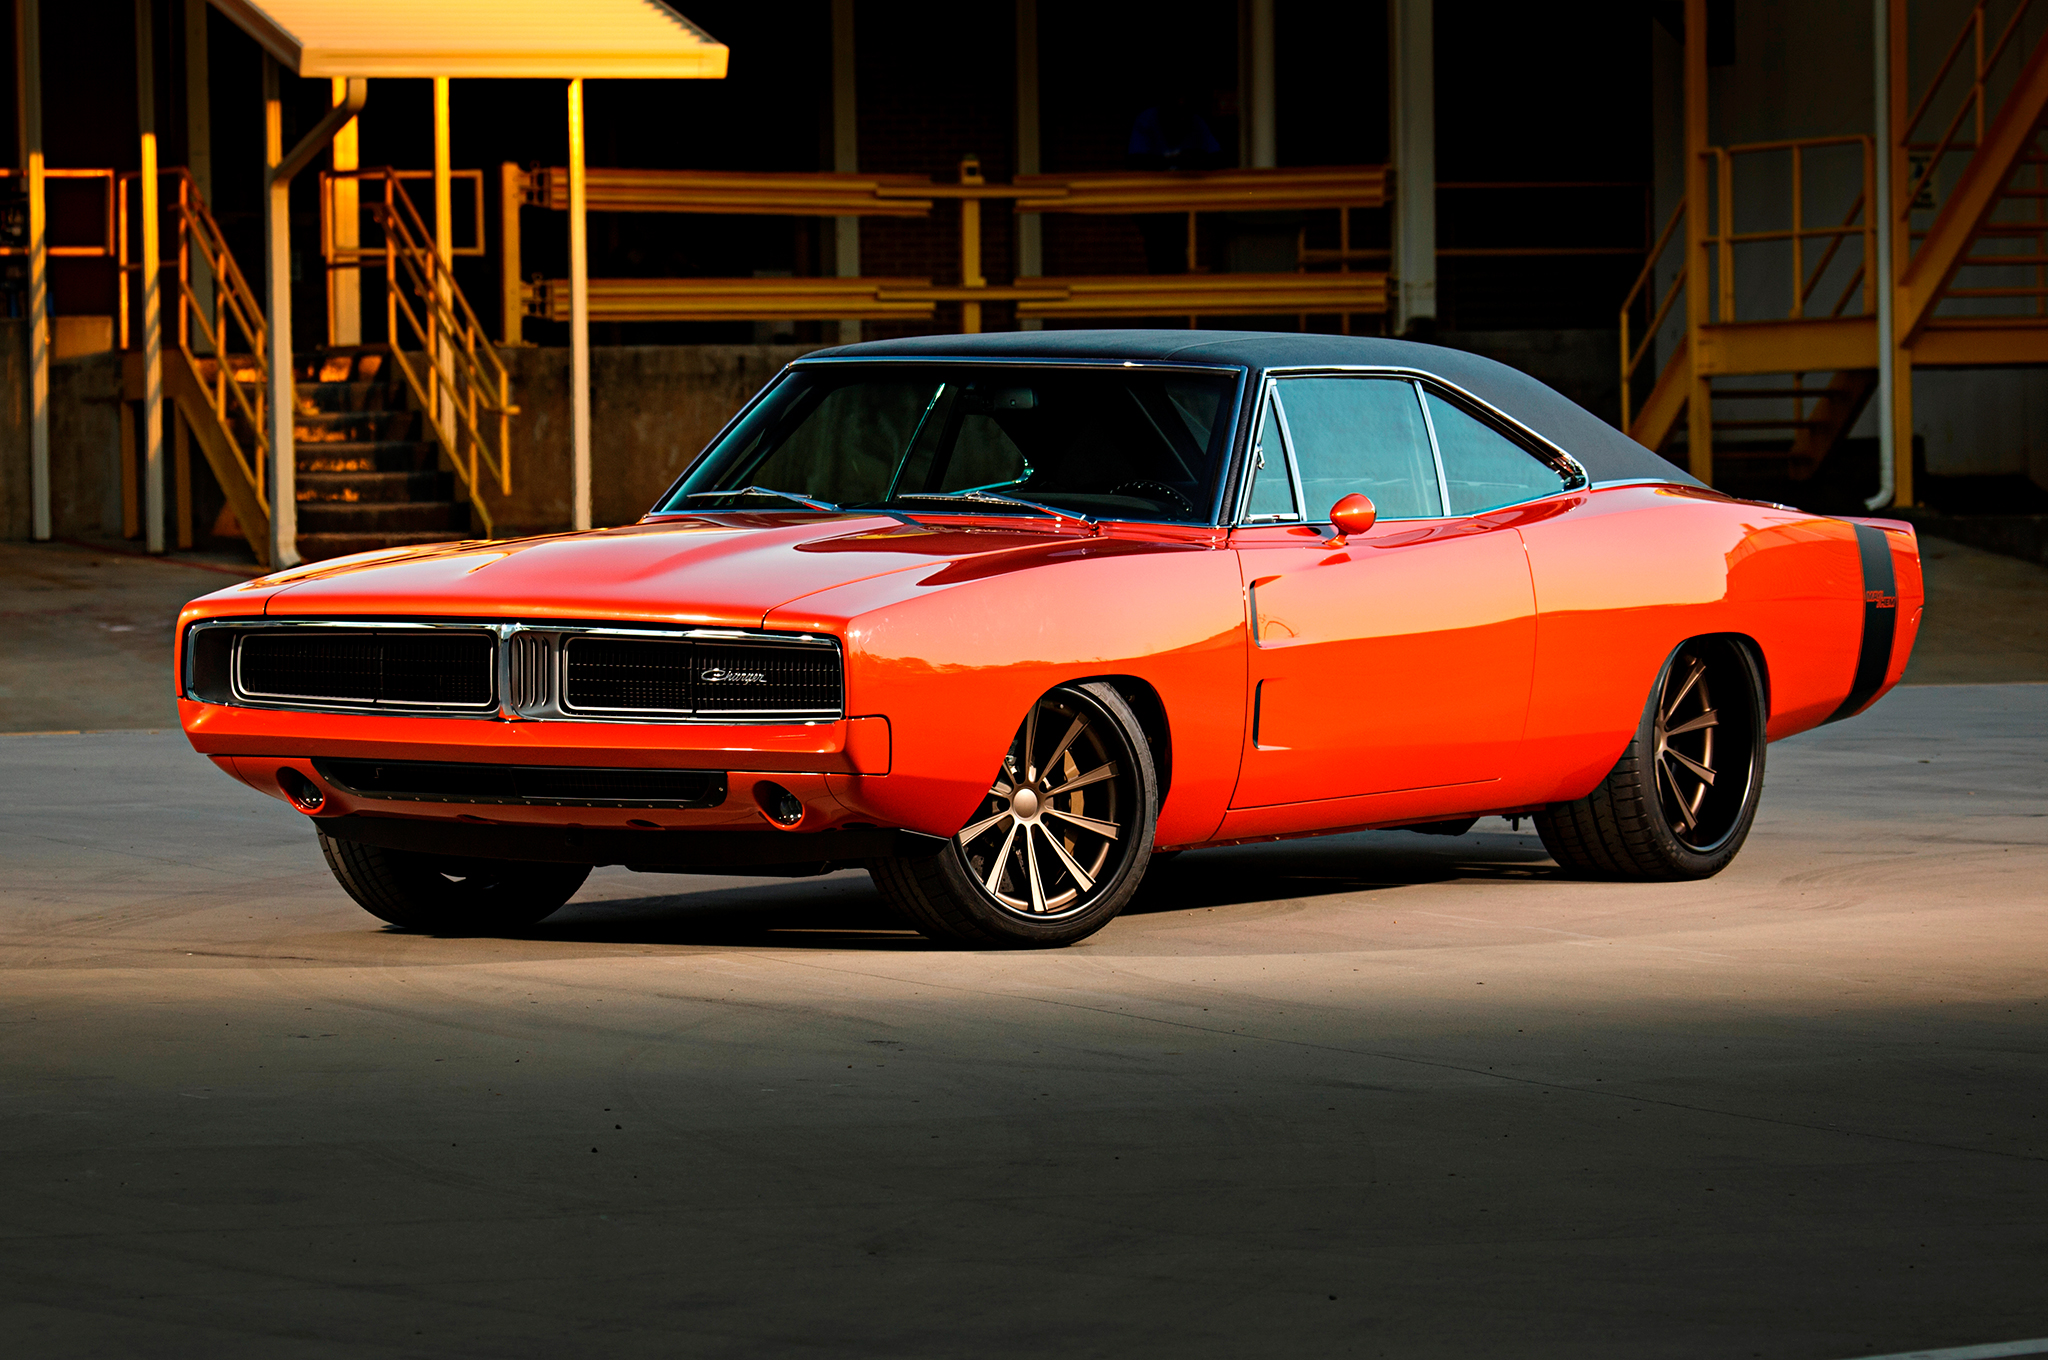 Ideal 69 Dodge Charger For Vehicle Decoration Ideas With Card From User Sultan5mikro In YandexCollections